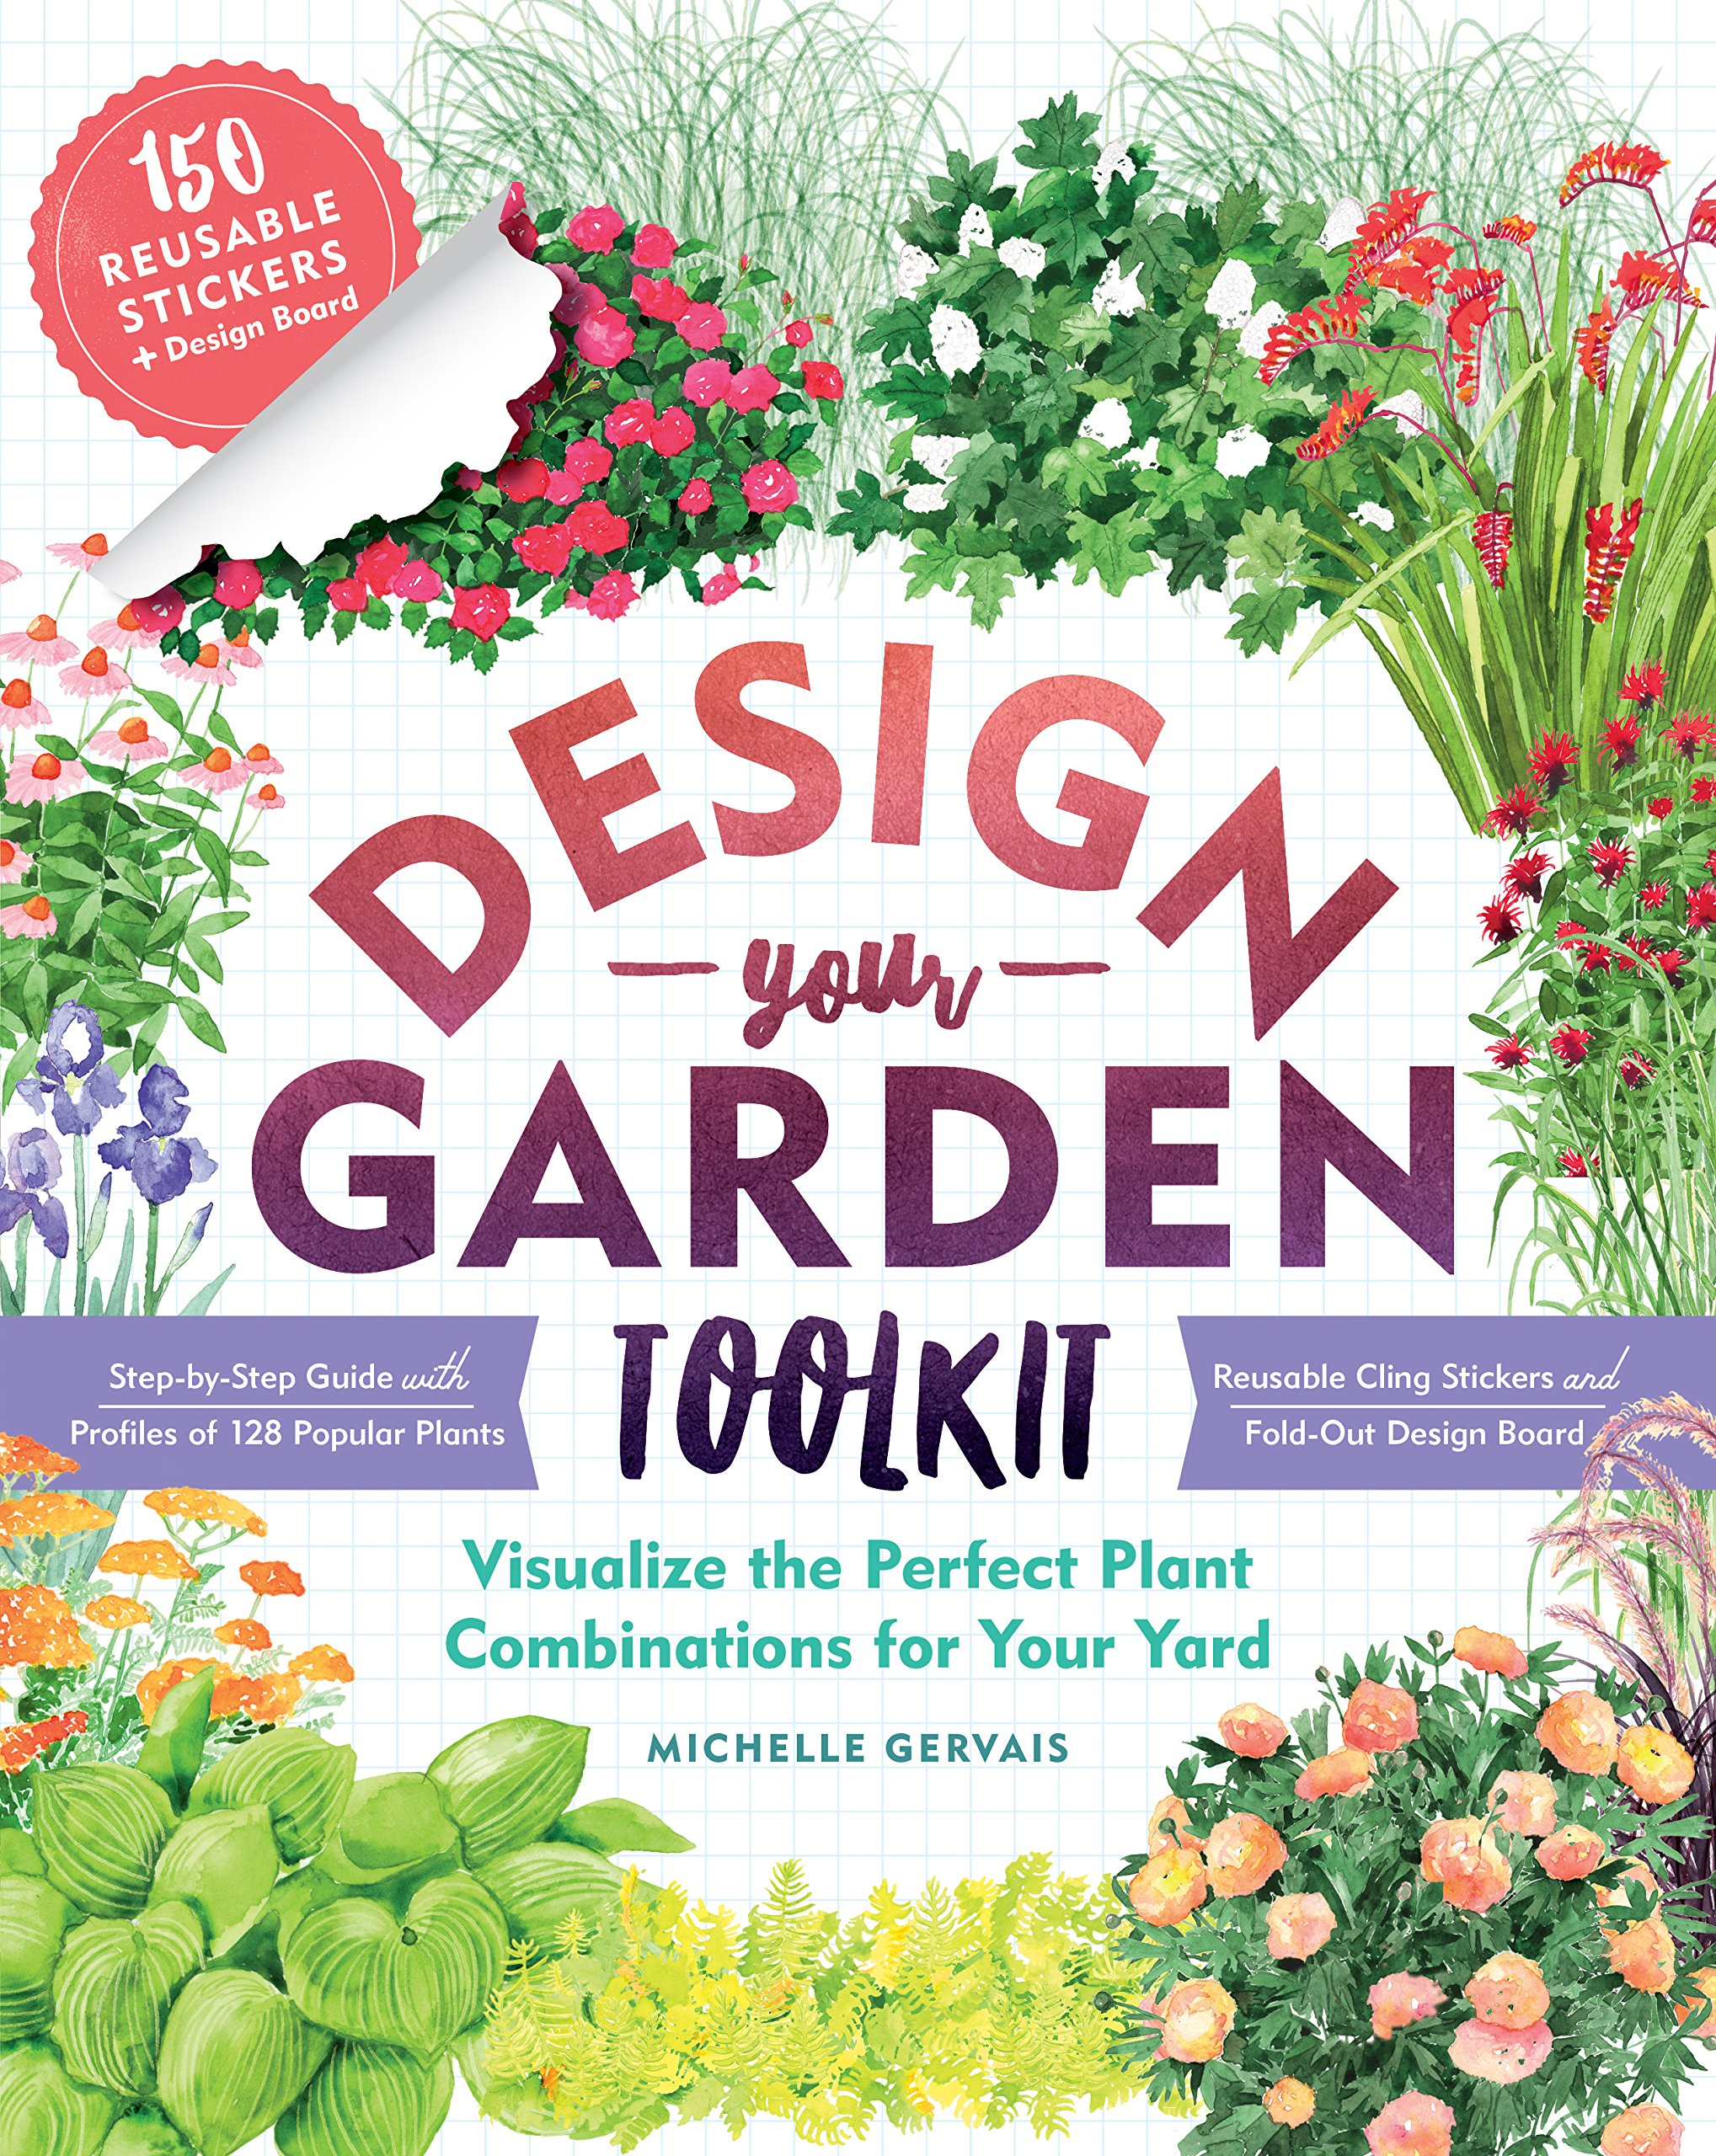 Design Your Garden Toolkit: Visualize The Perfect Plant Combinations For  Your Yard; Step By Step Guide With Profiles Of 128 Popular Plants, Reusable  Cling ...